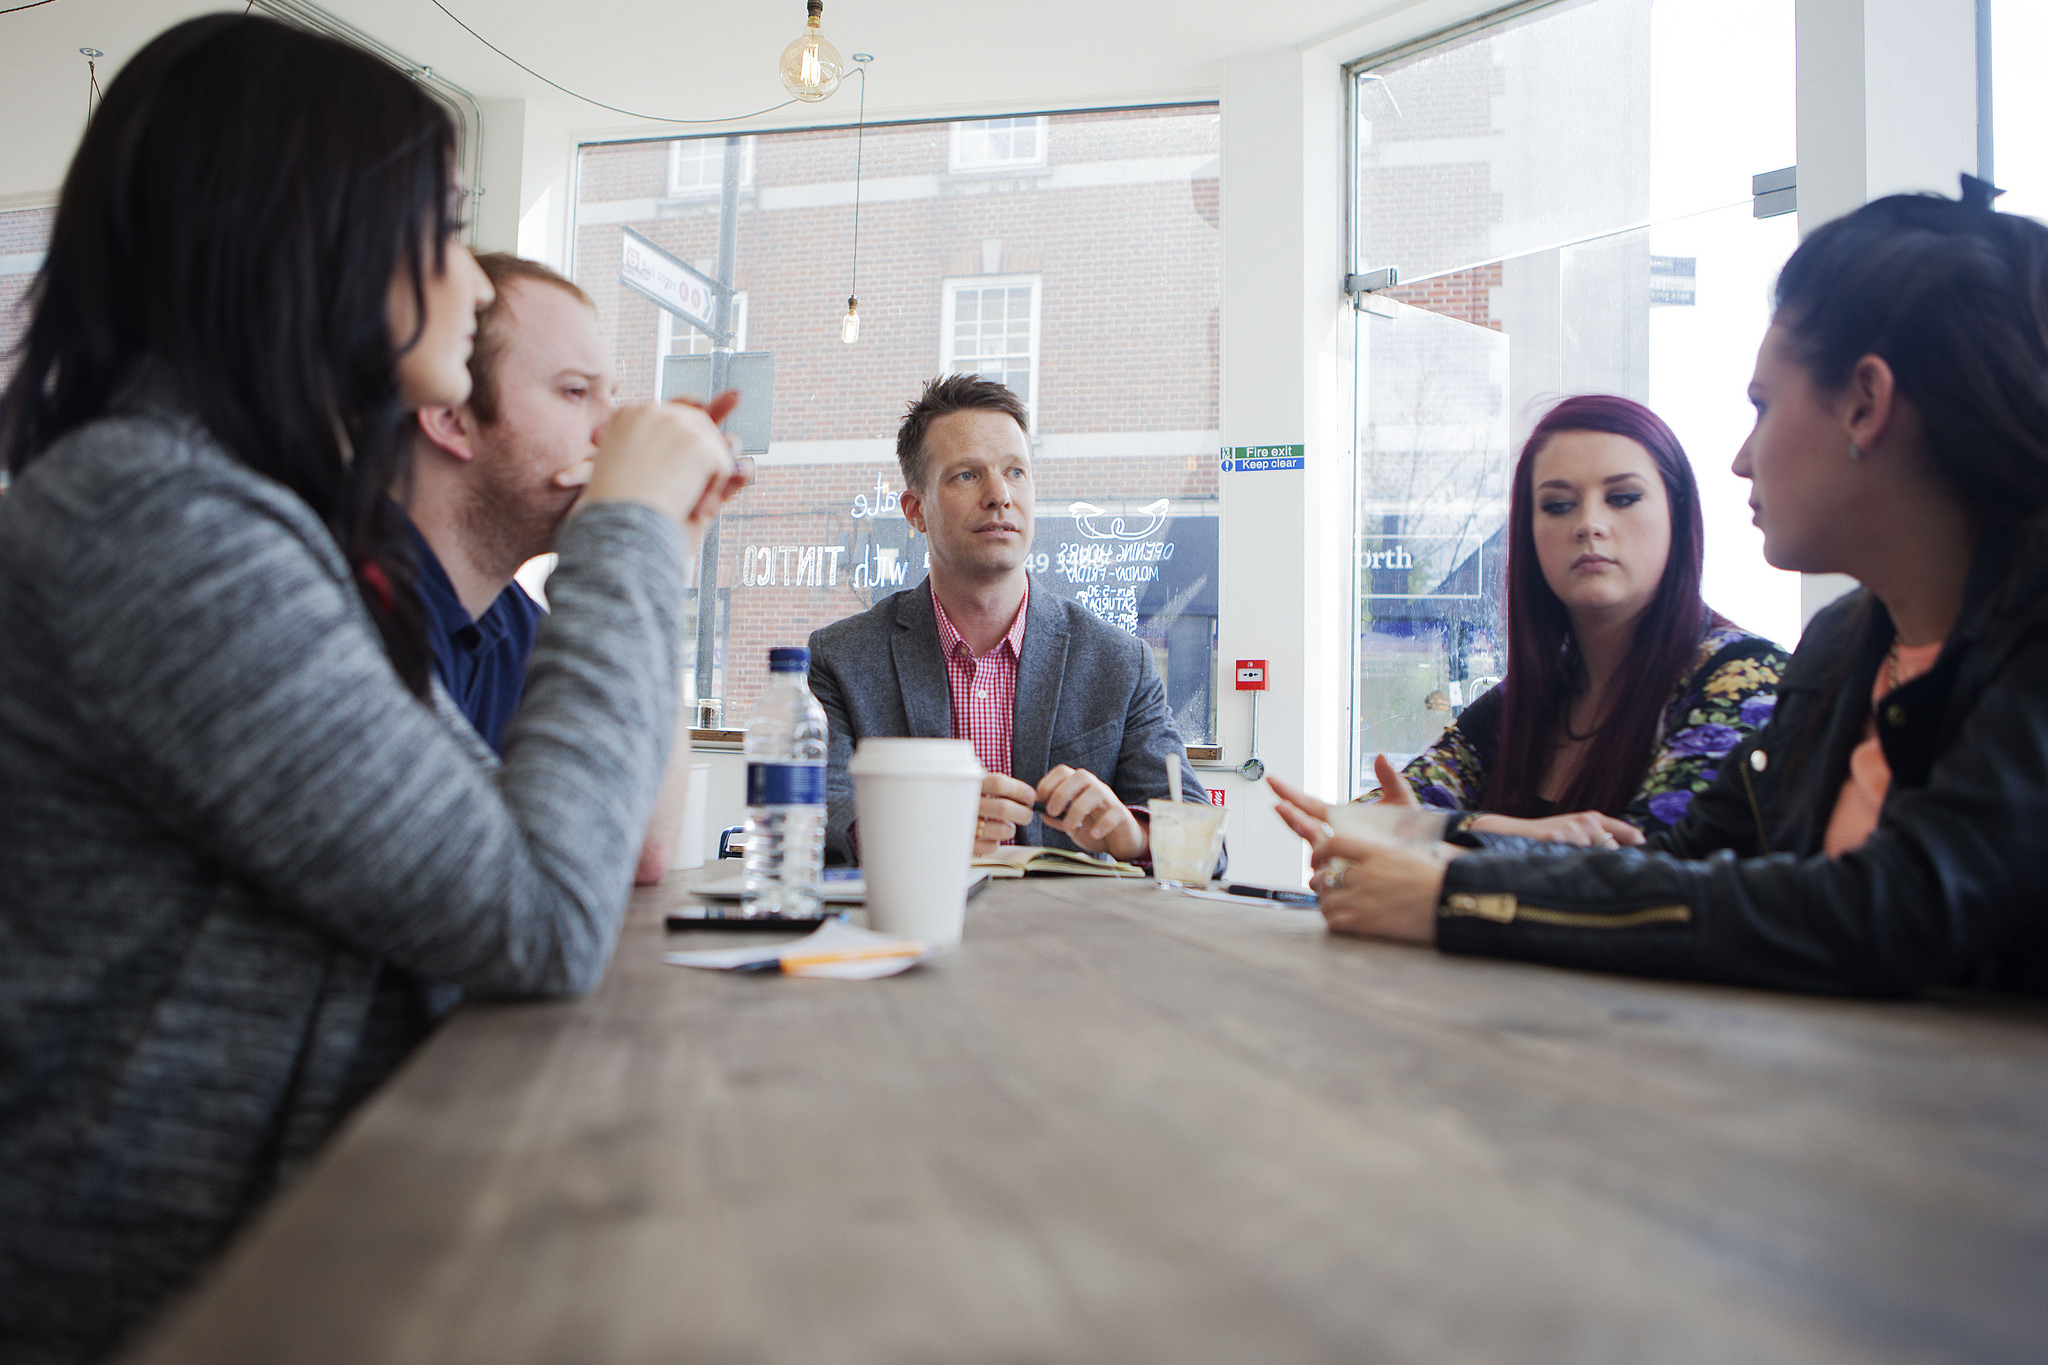 Adopt the Habits of Highly-Effective Business Owners